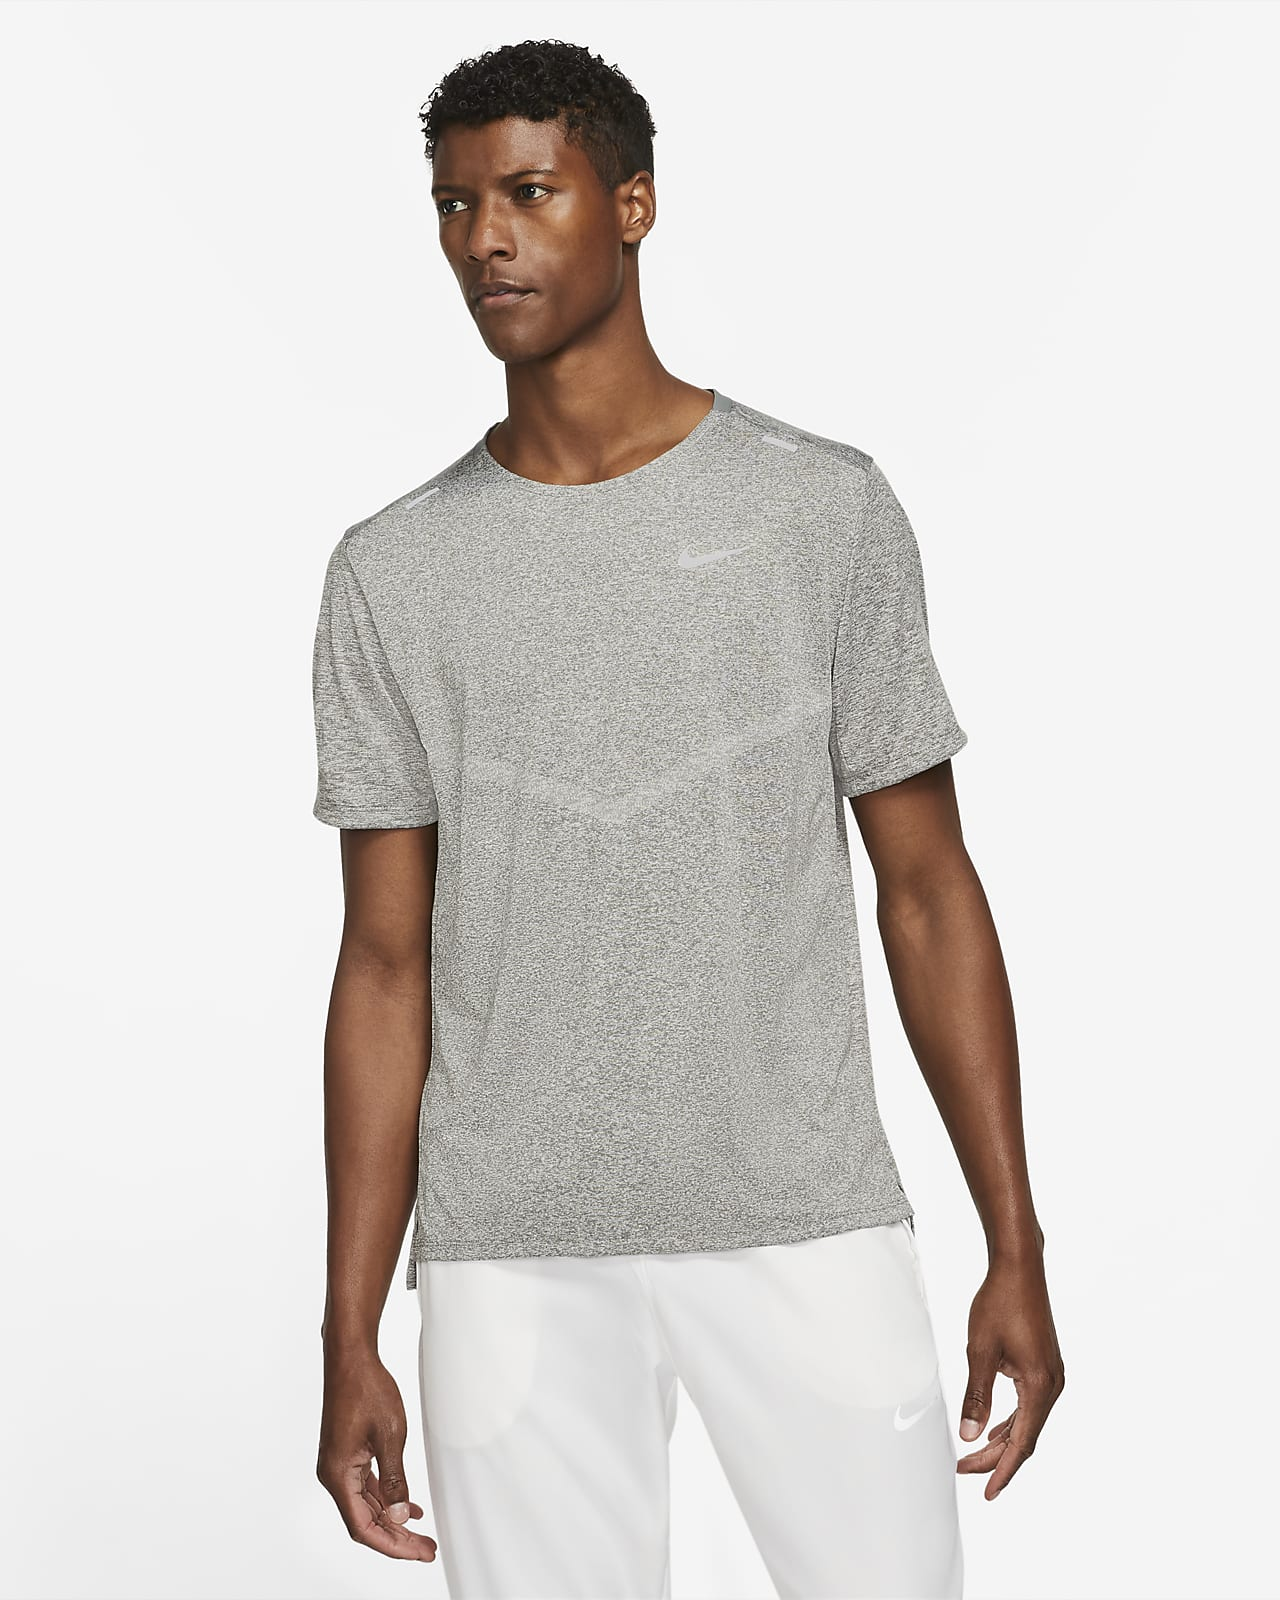 Nike Dri-FIT Rise 365 Men's Short-Sleeve Running Top